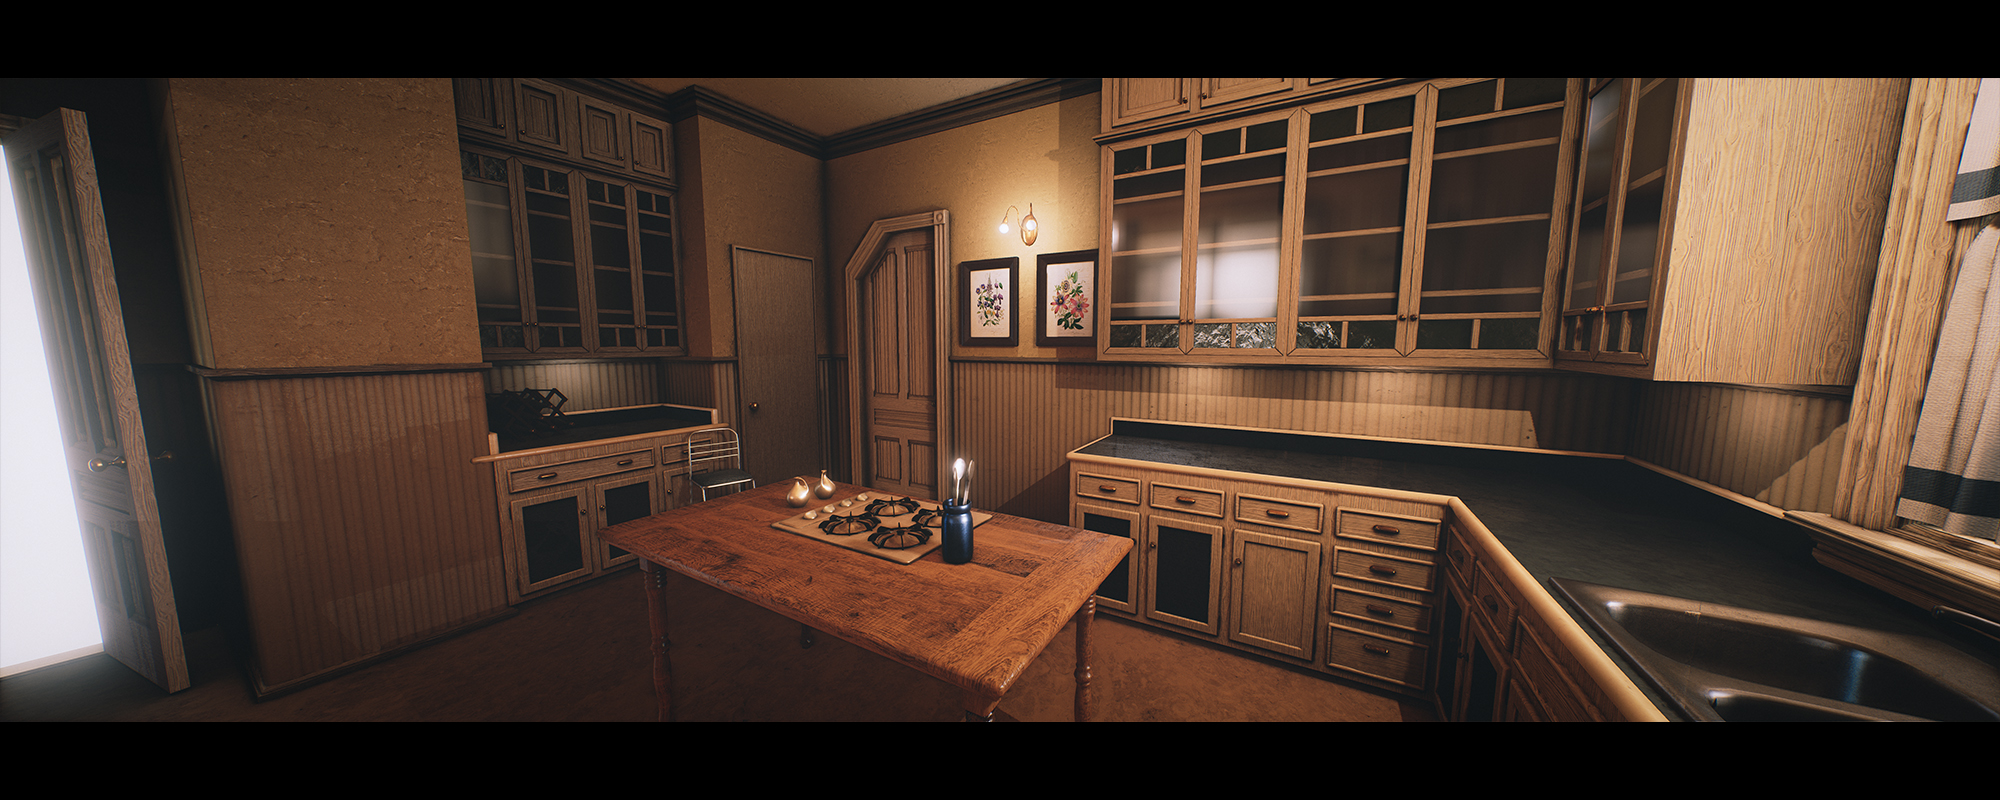 Charmed house halliwell manor polycount for Charmed house blueprints